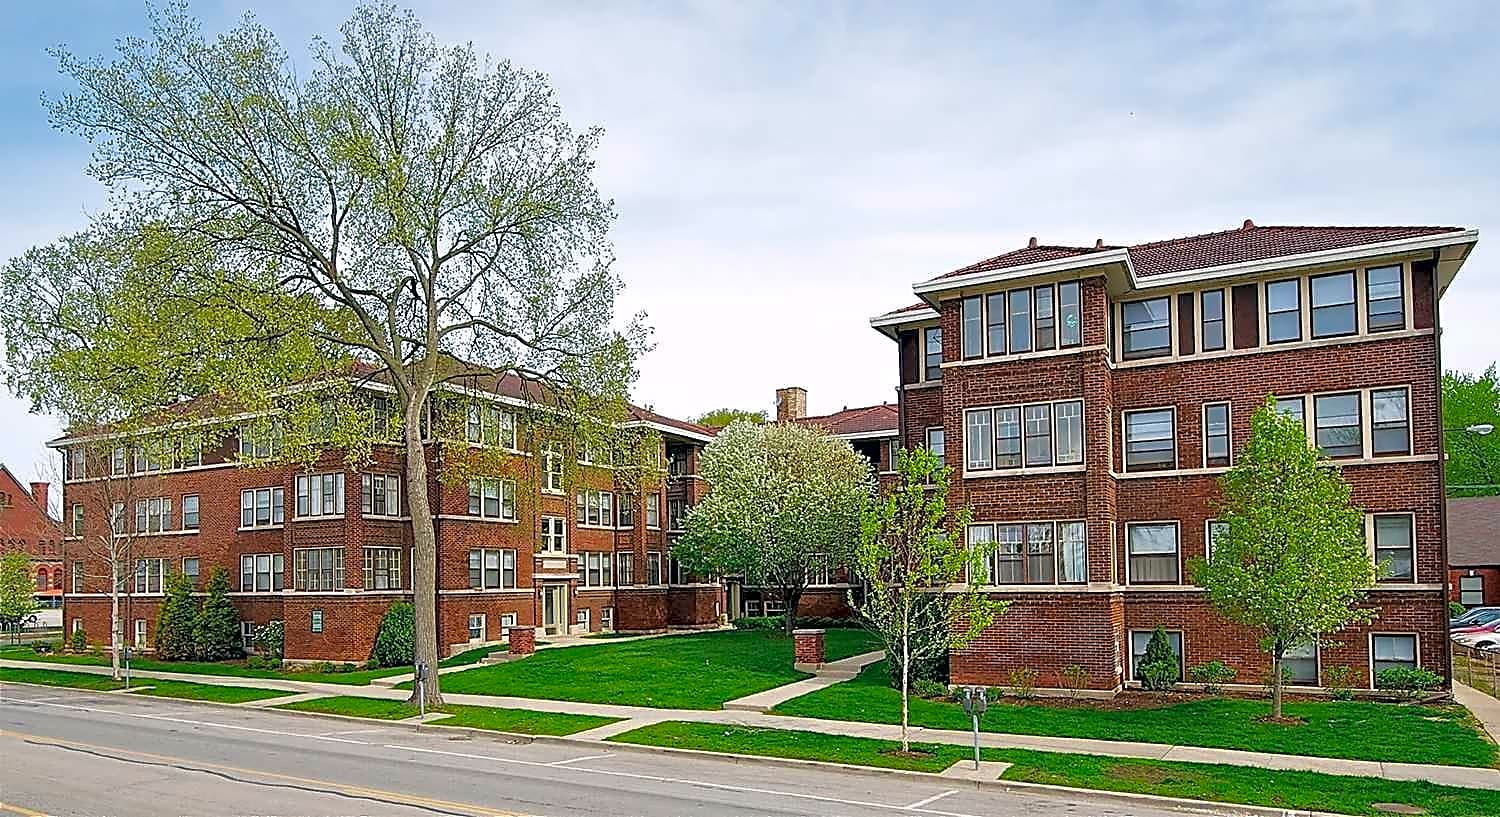 Apartments Near Concordia Oak Park Apartments for Concordia University Students in River Forest, IL